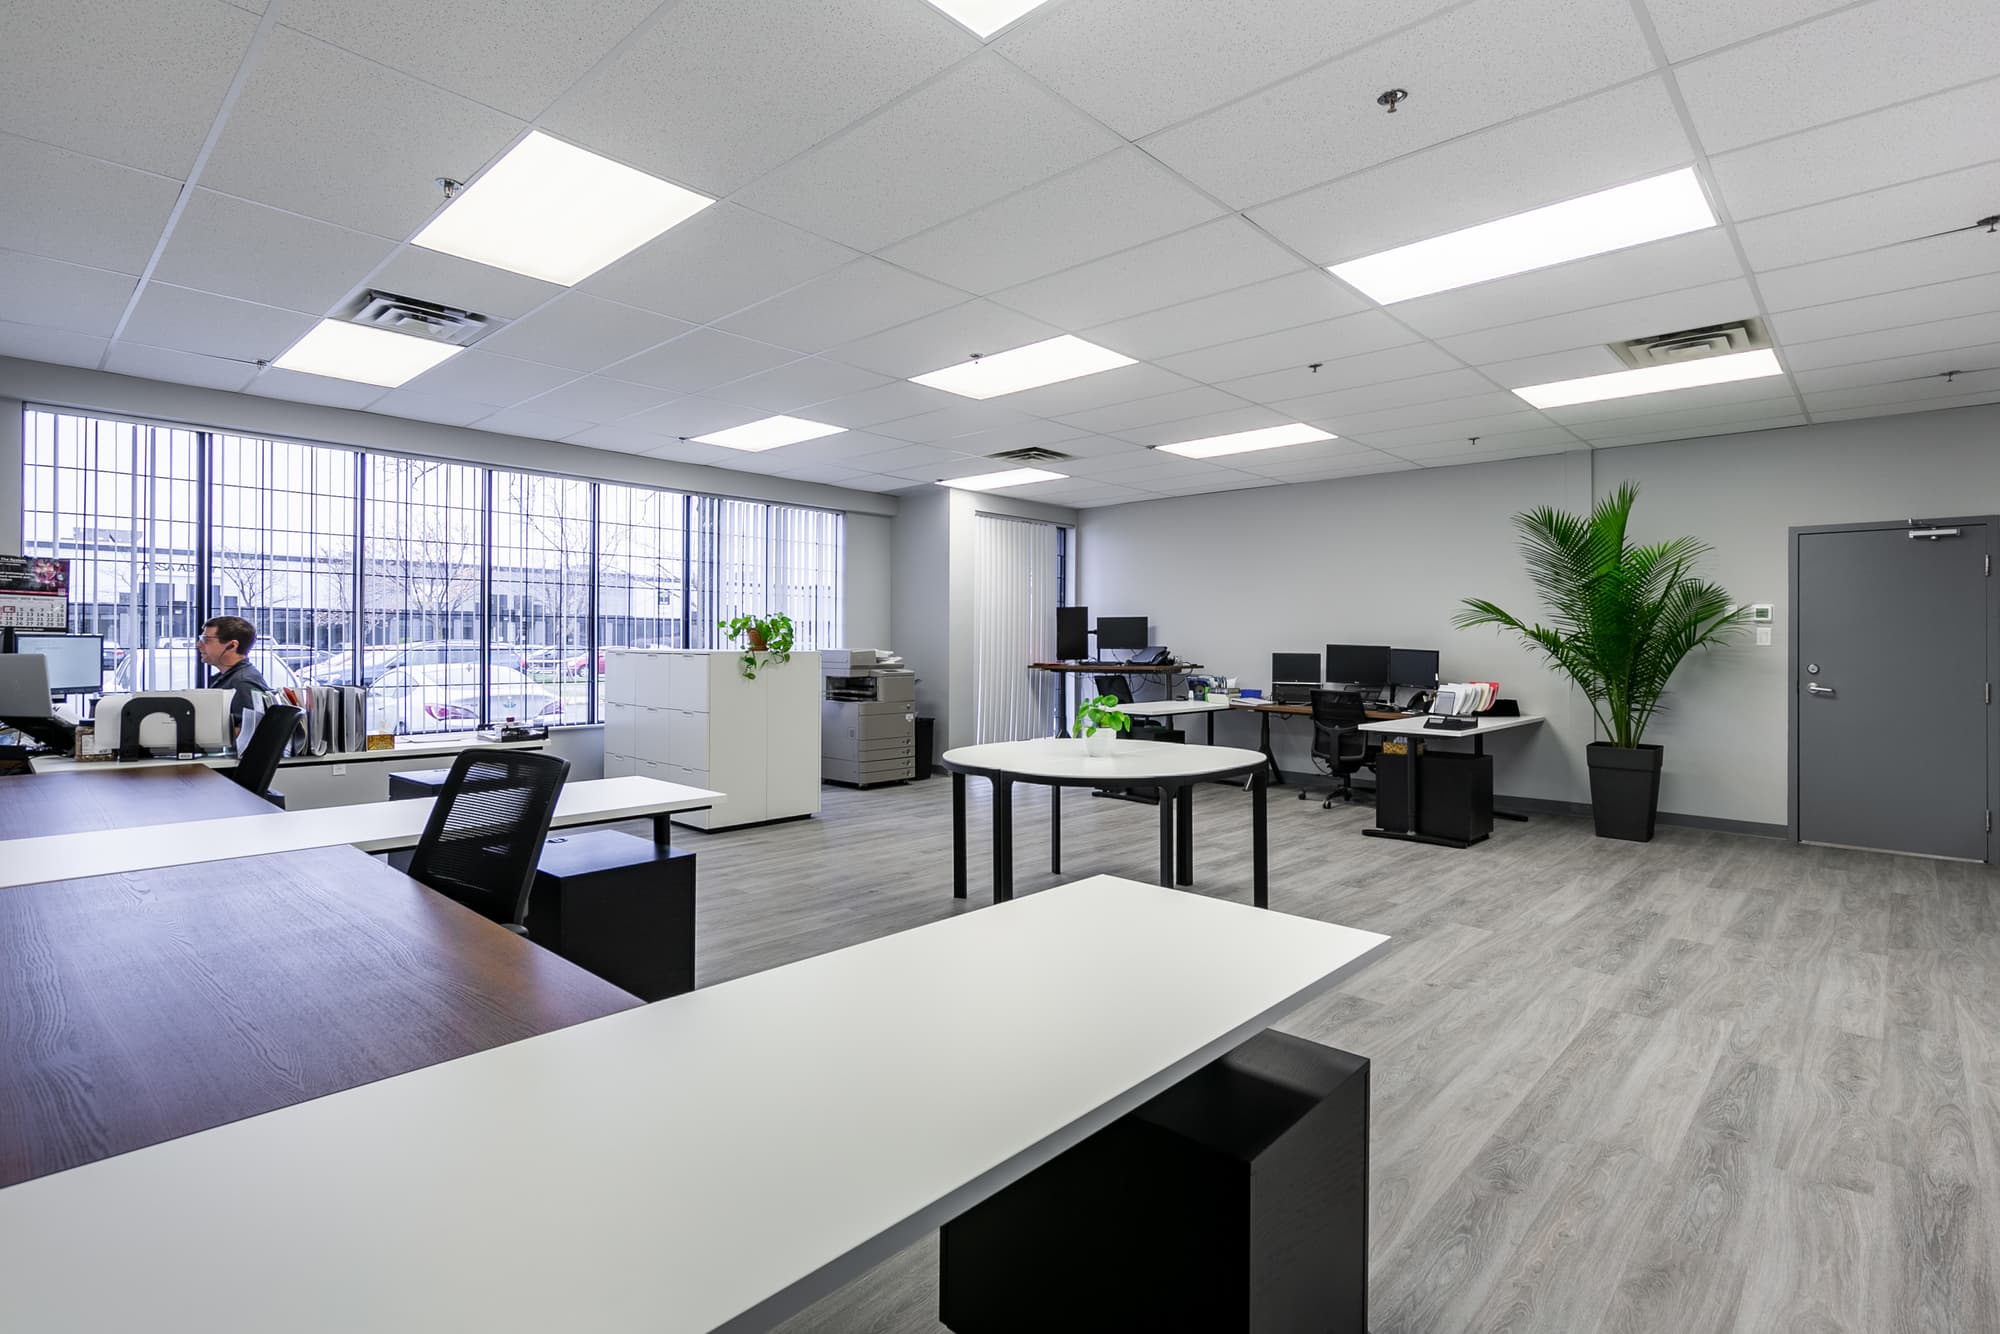 office space with tables and desks